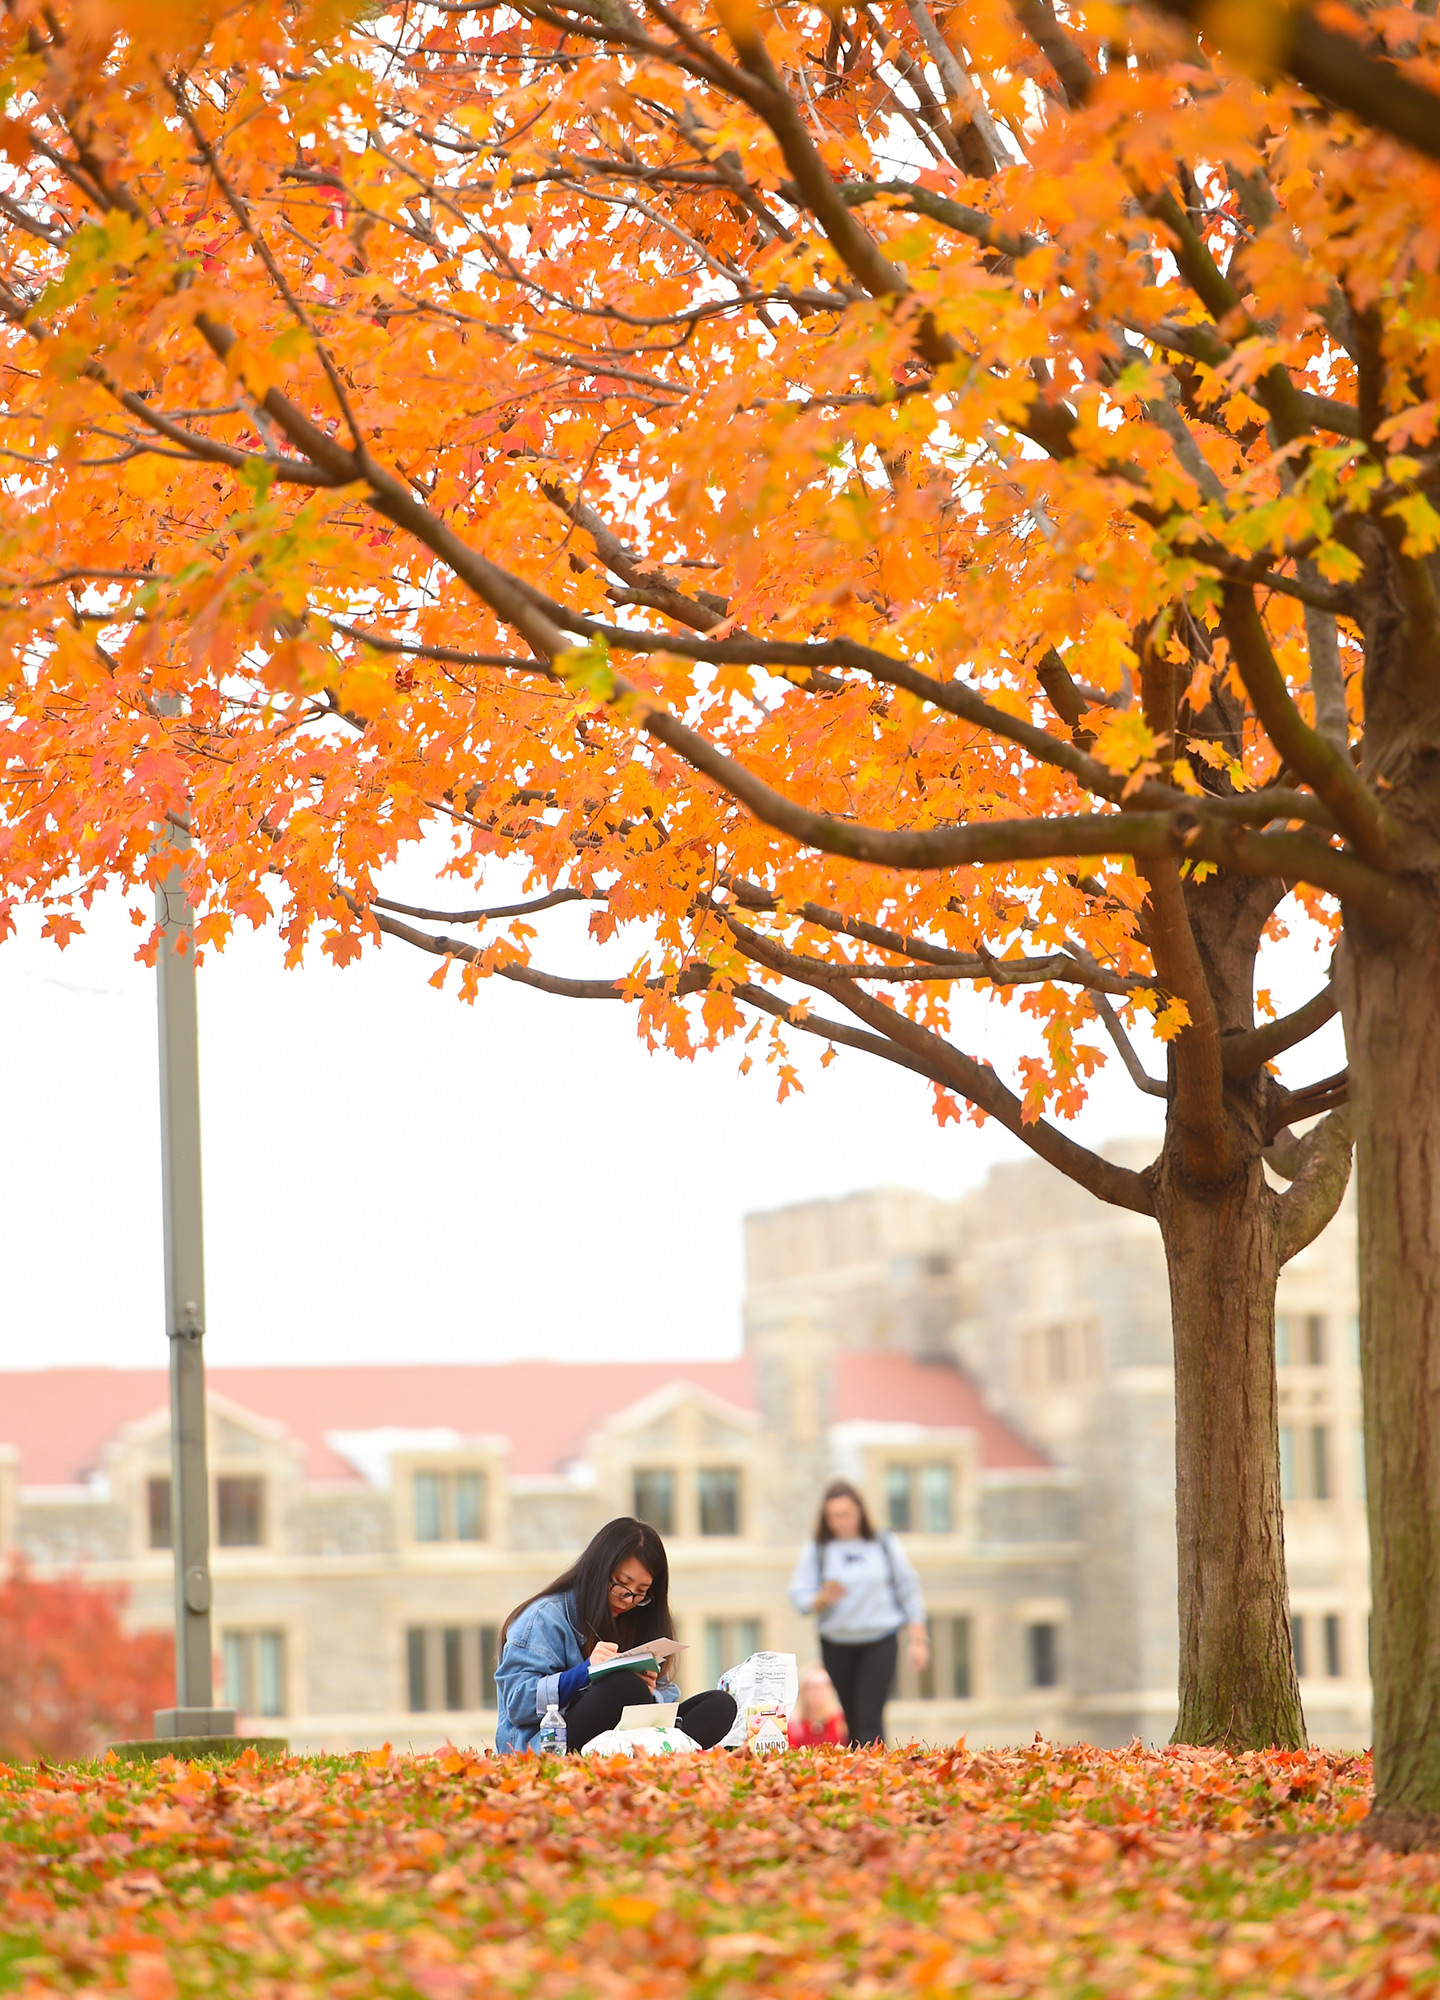 Student studying under a tree in fall